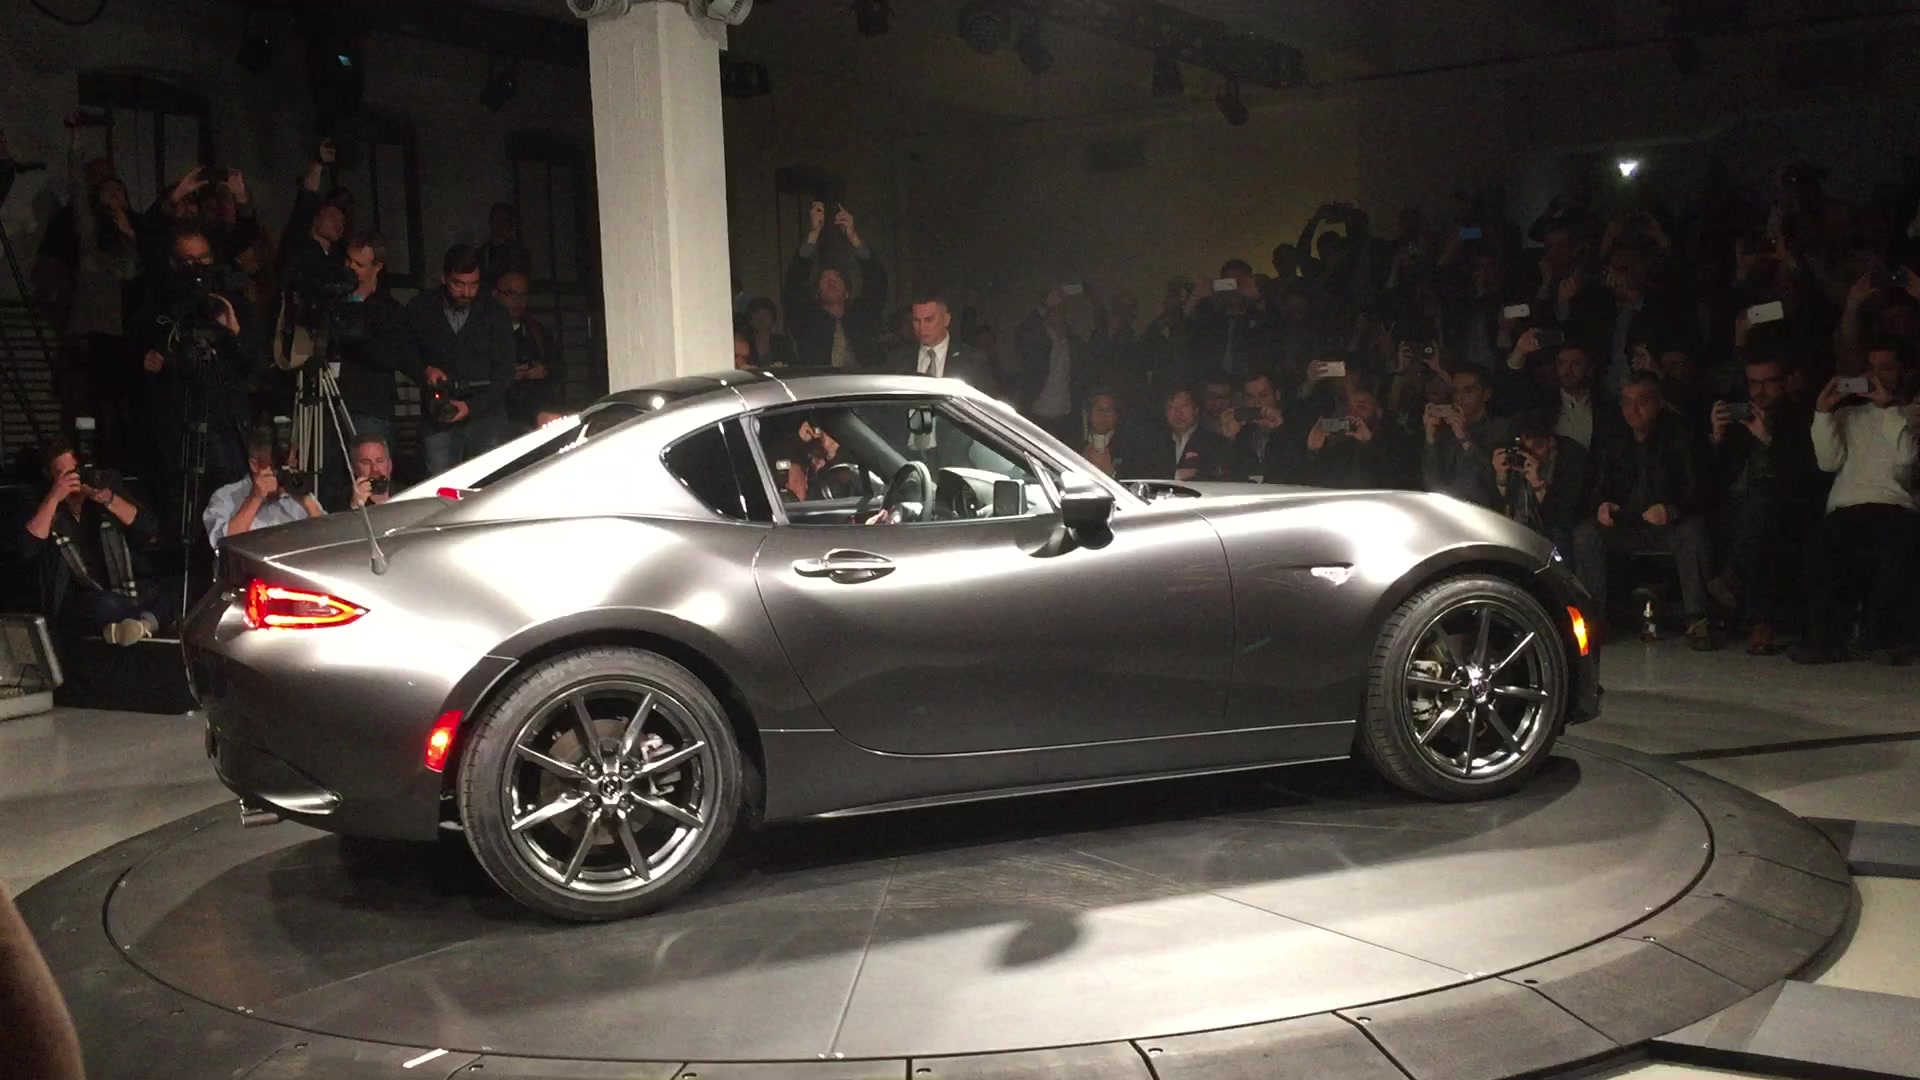 2017 Mazda MX-5 Miata RF Reveal | Autoblog Short Cuts